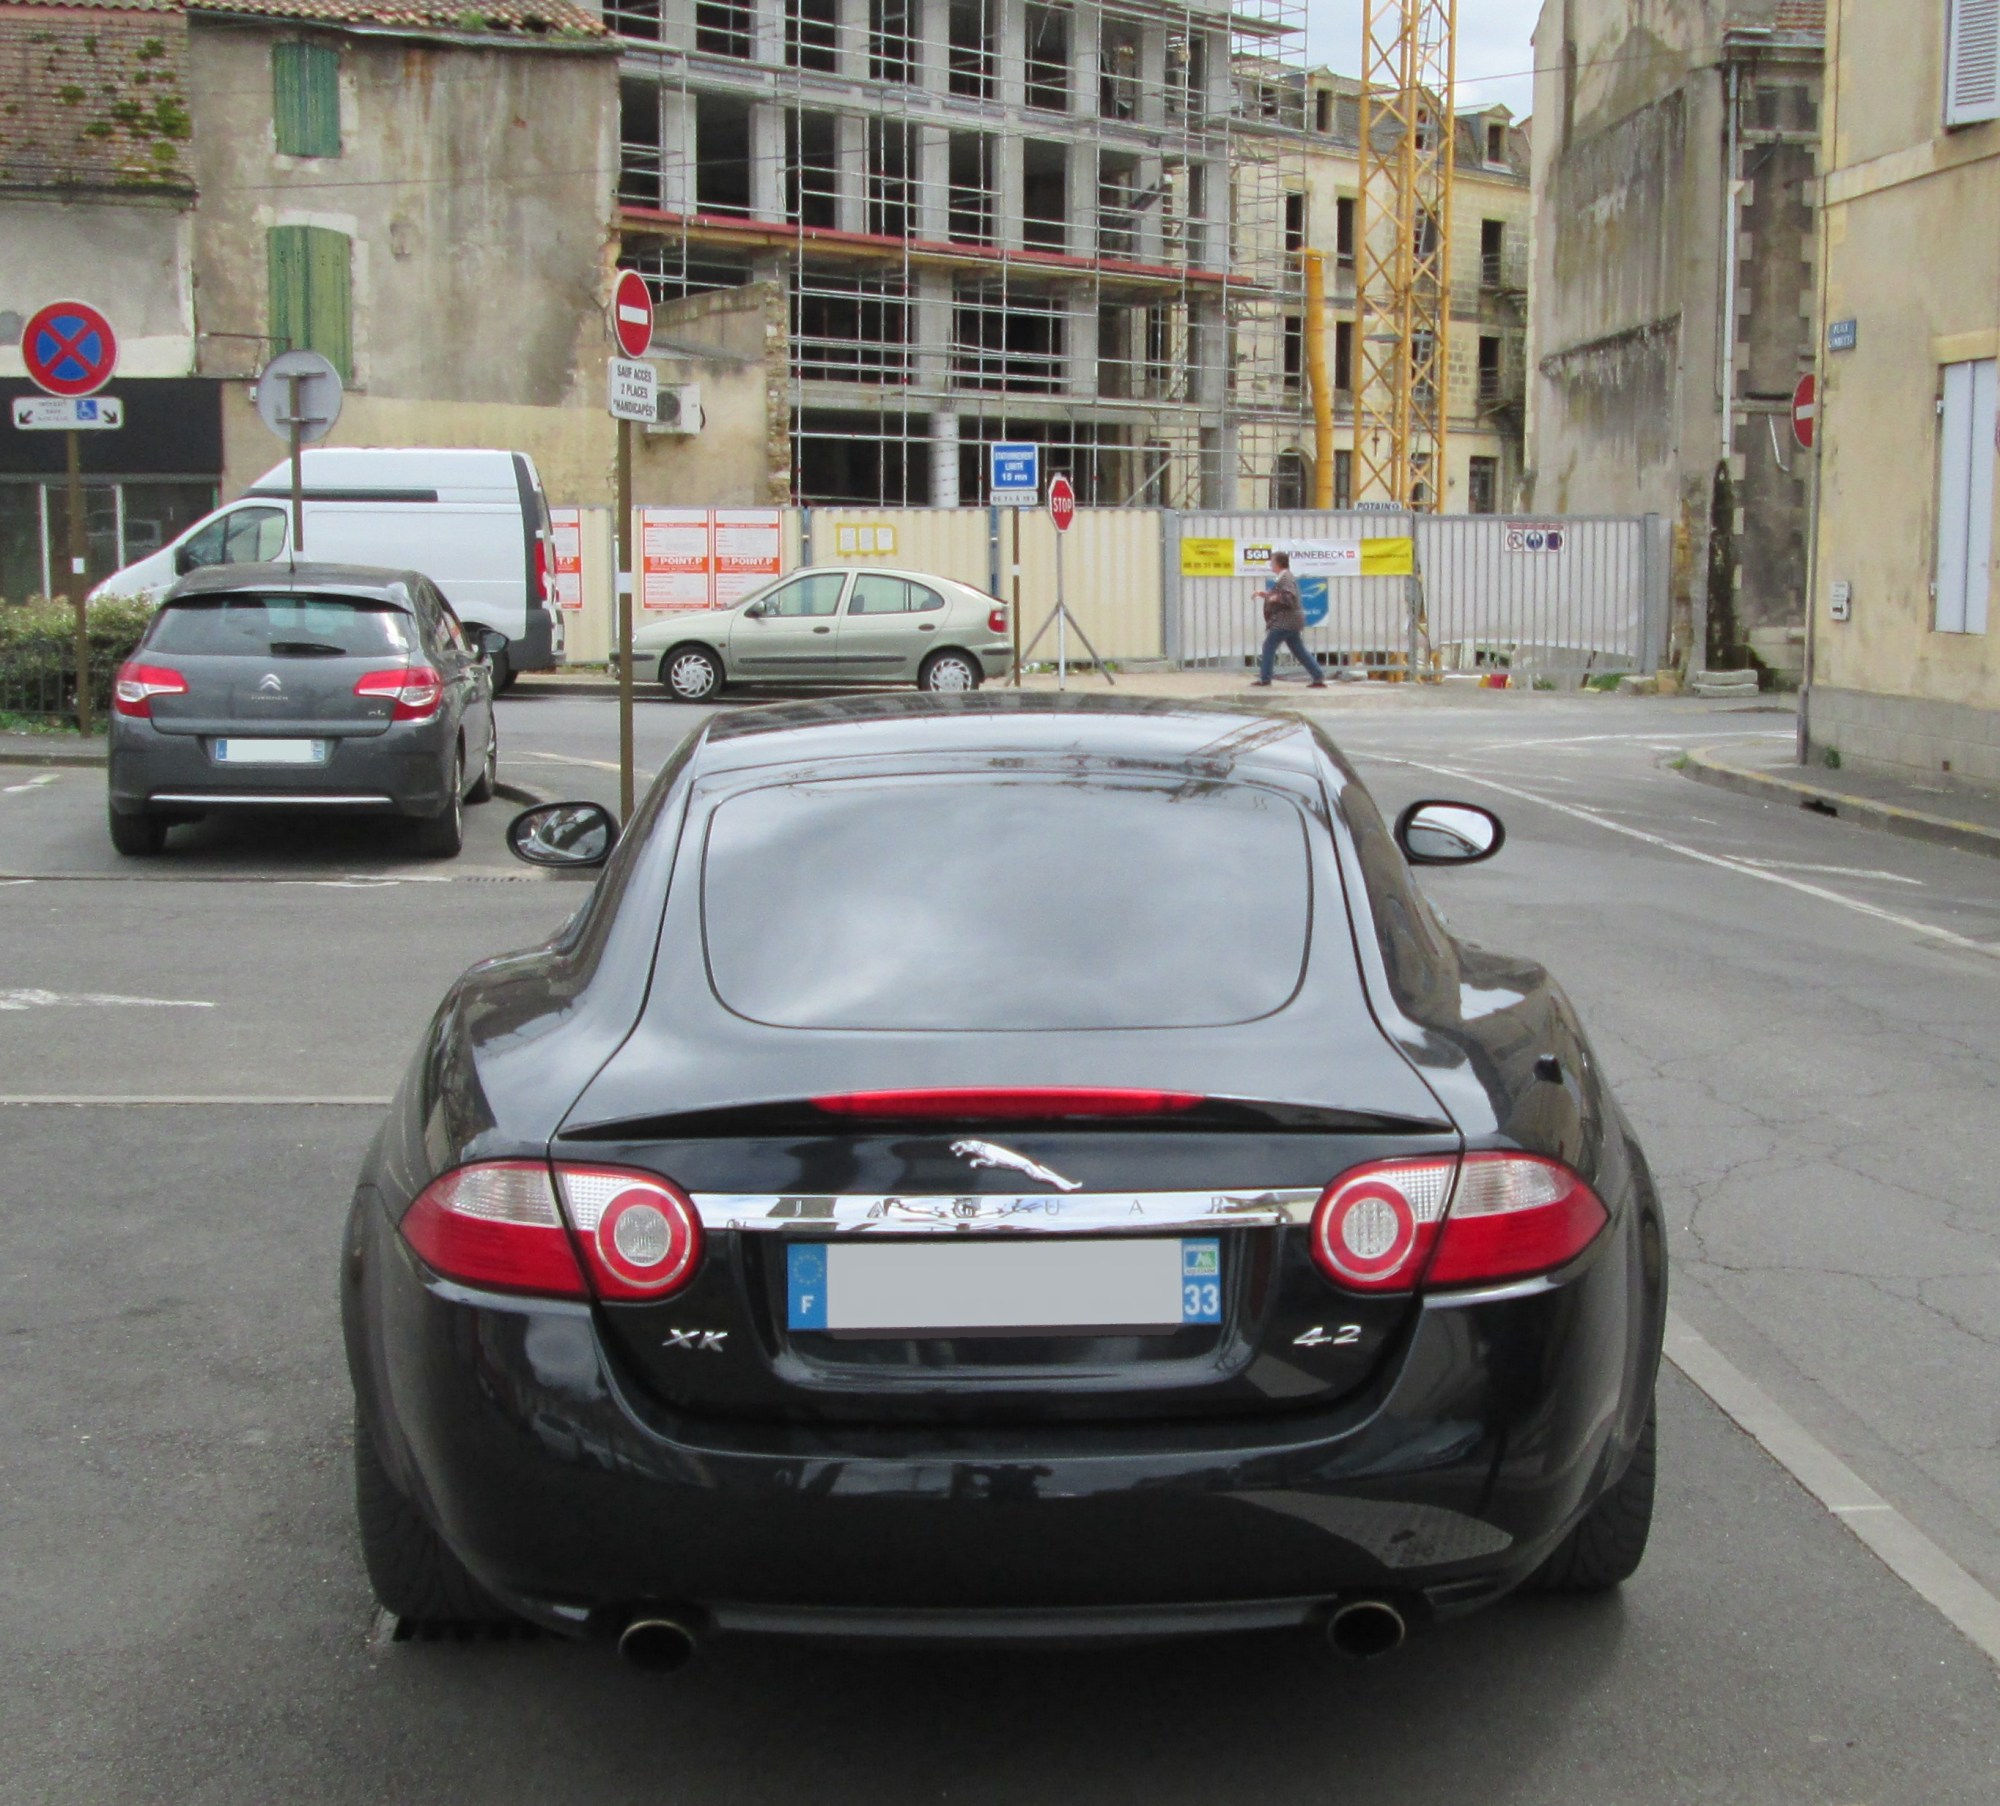 hight resolution of file jaguar xk 4 2 rear view jpg